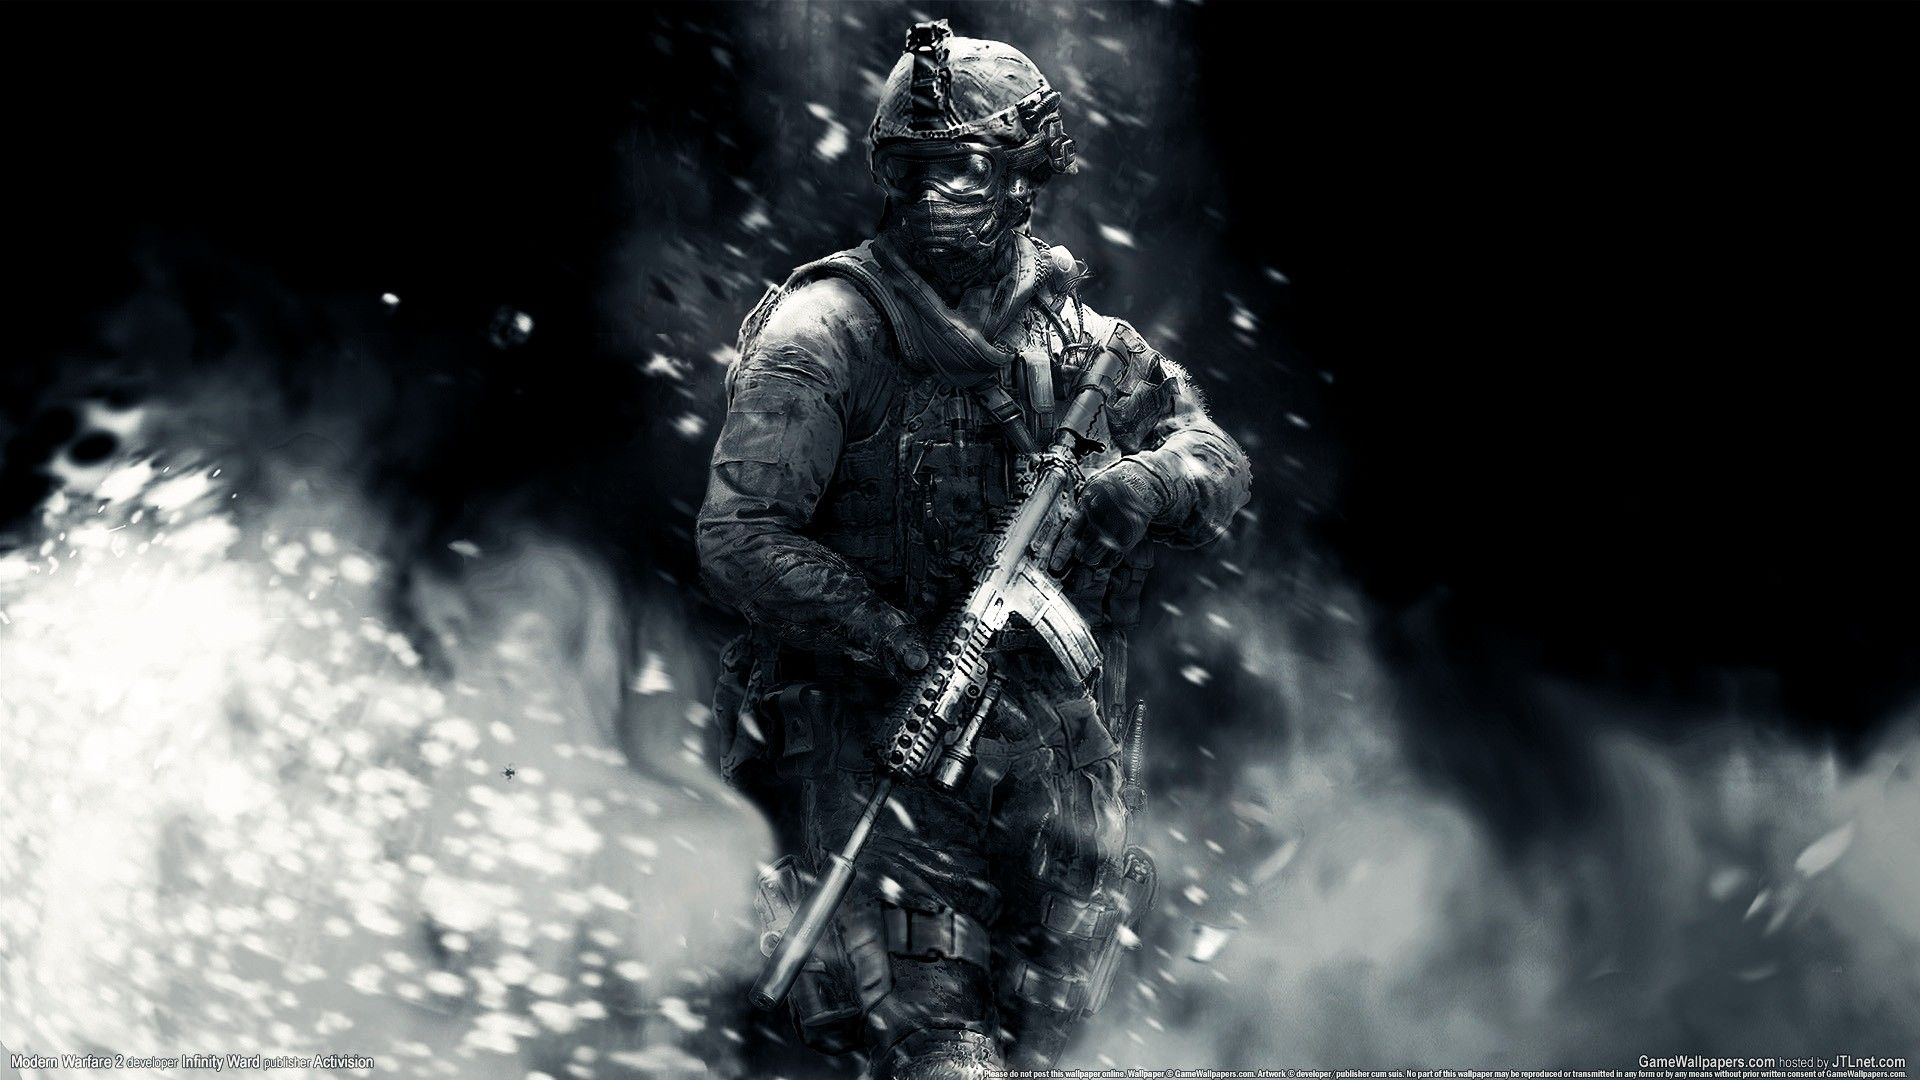 1920x1080 Call Of Duty HD Wallpaper 12 - 1920 X 1080 | stmed.net